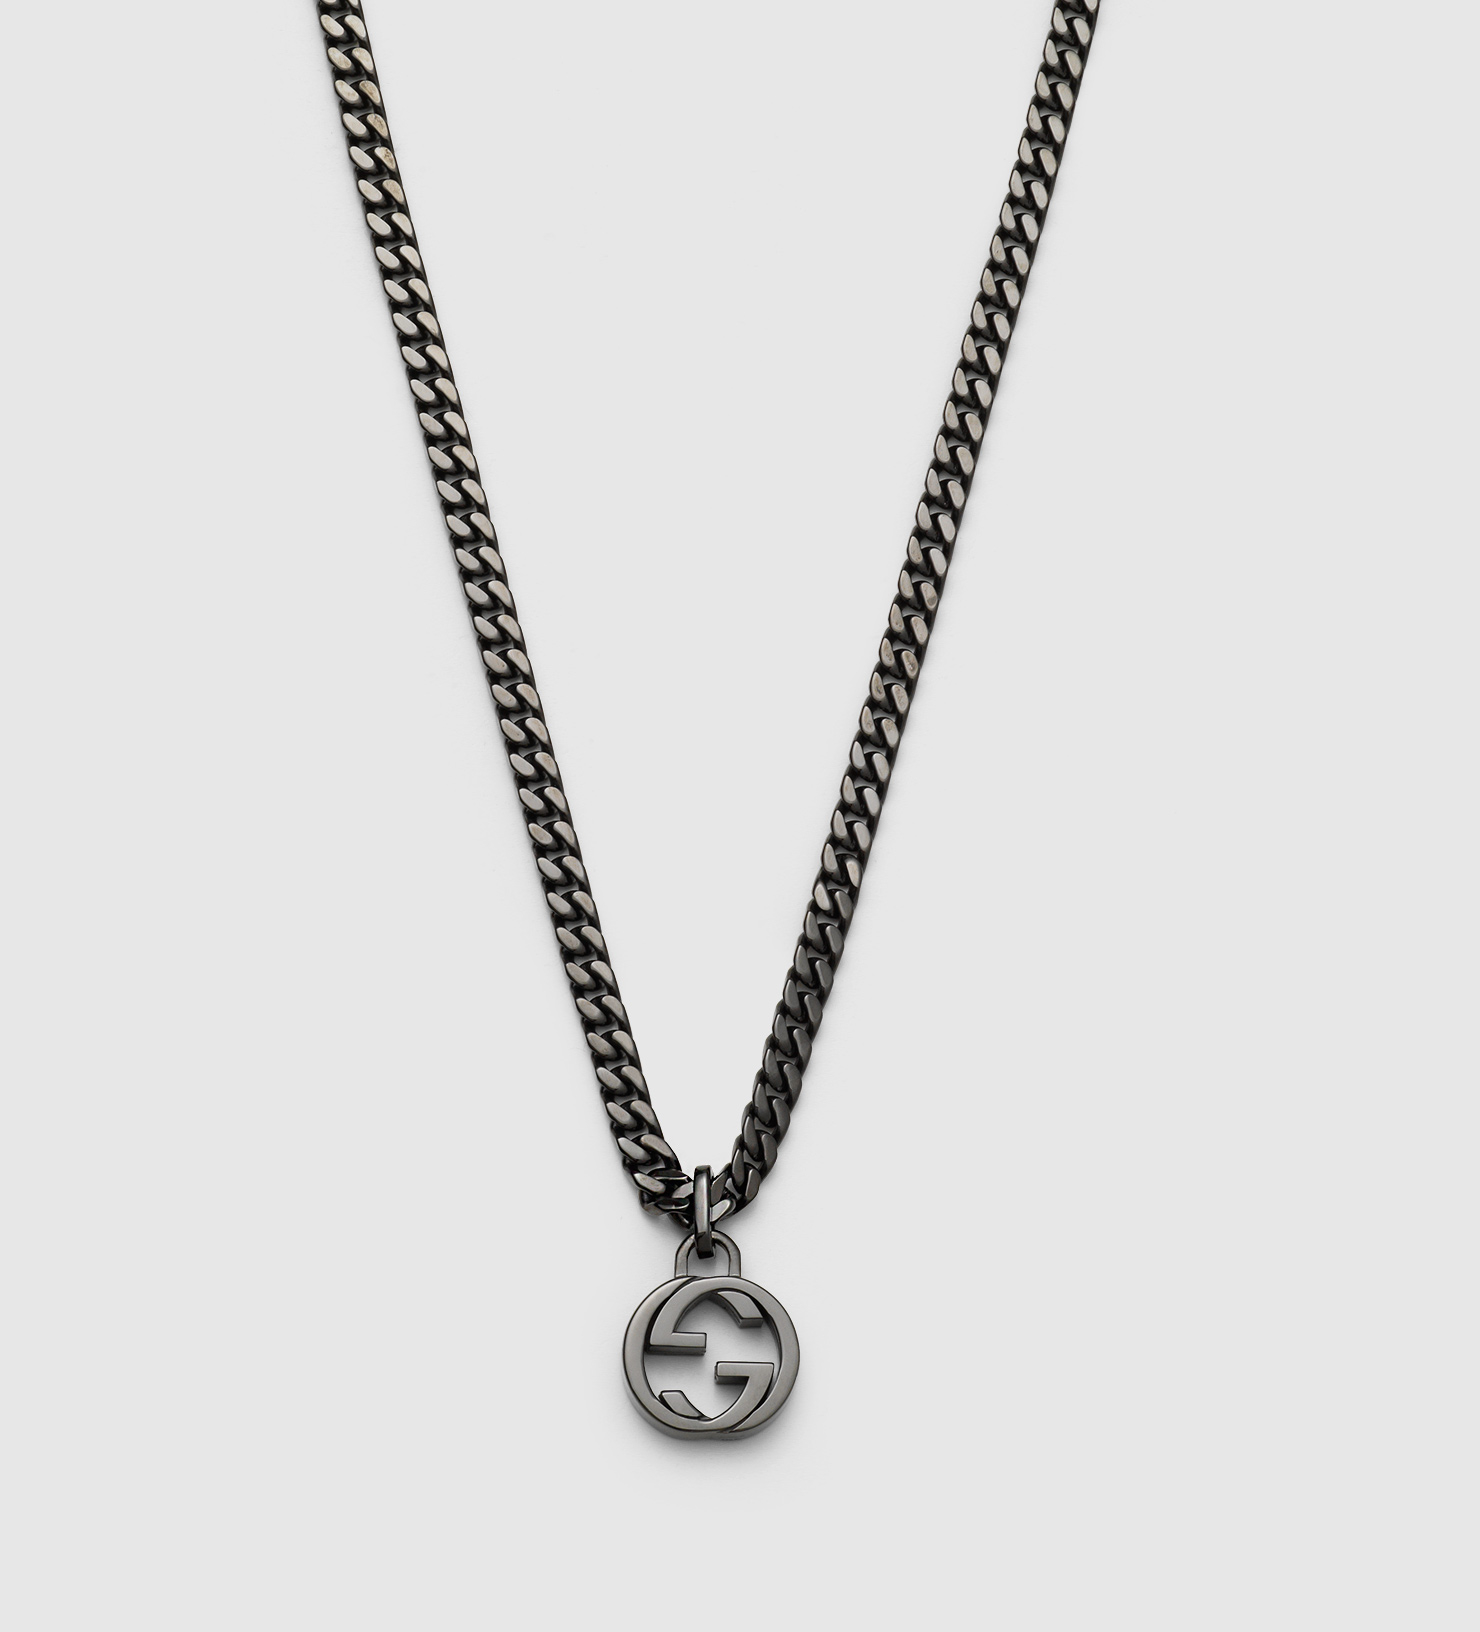 Gucci Silver Necklace With Interlocking G Pendant In